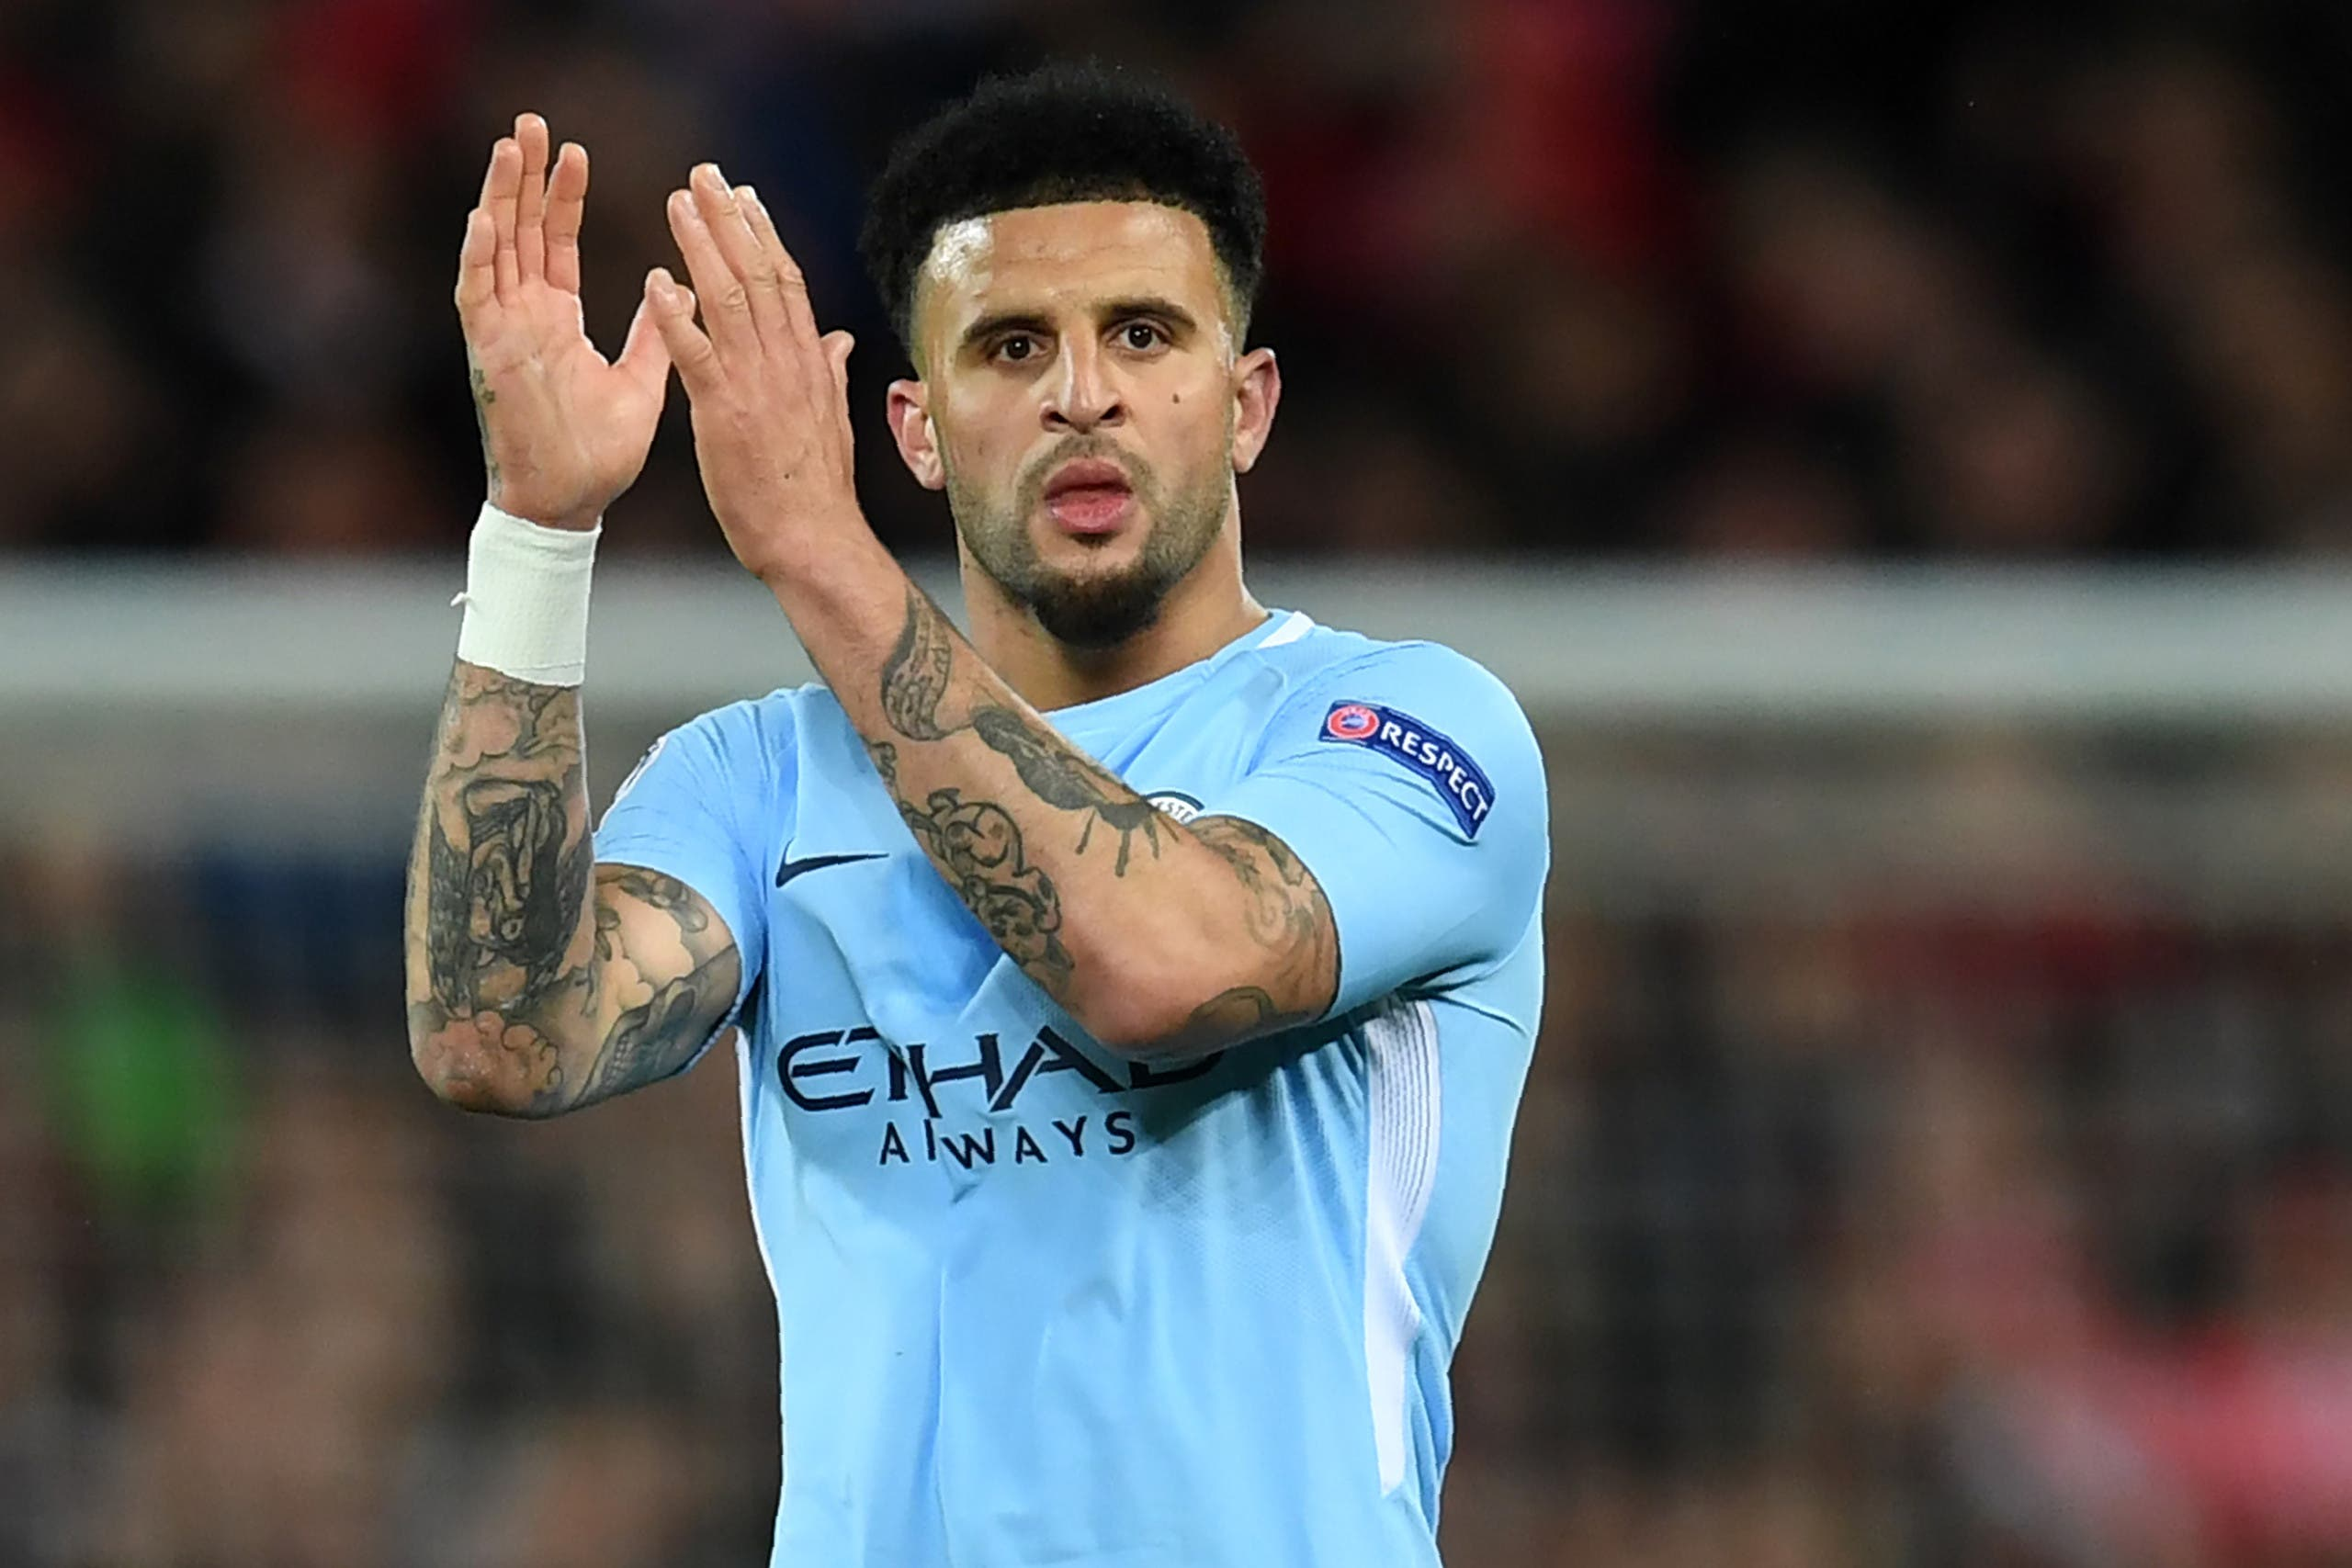 Manchester City's English defender Kyle Walker reacts at the final whistle during the UEFA Champions League first leg quarter-final football match between Liverpool and Manchester City on April 4, 2018. (AFP)